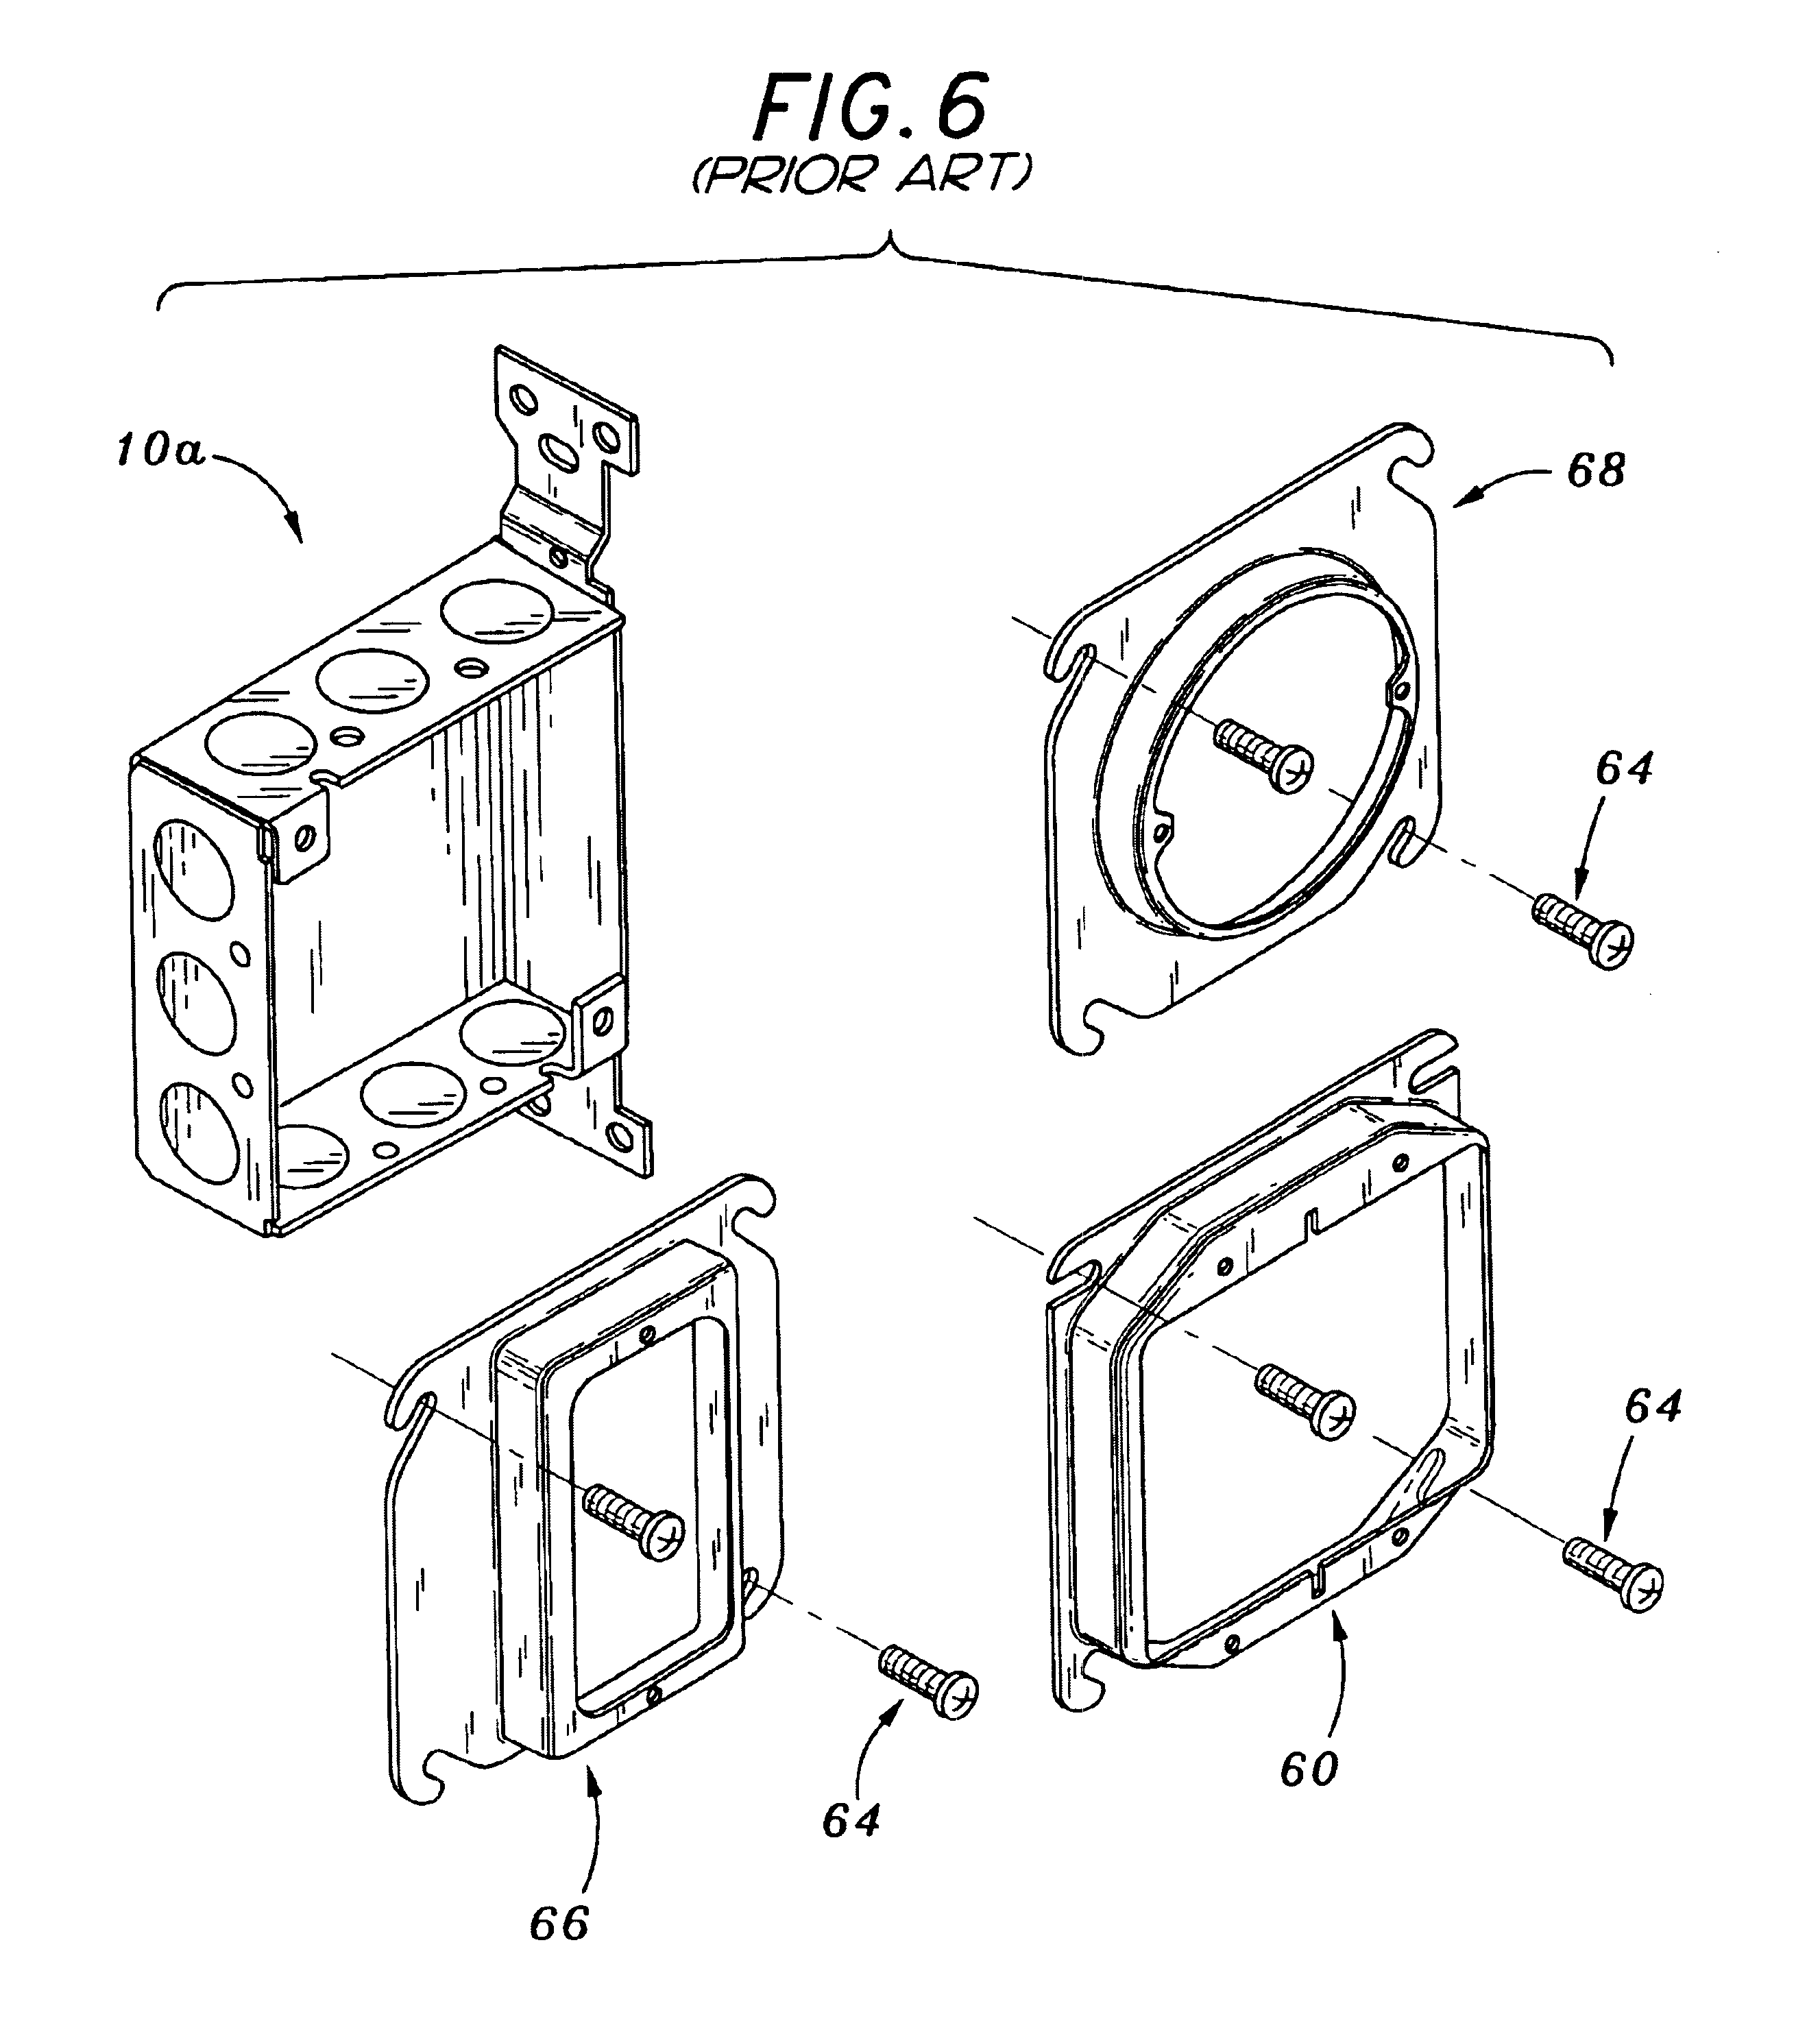 patent us6649835 - sub-exterior electrical box waterproofing system